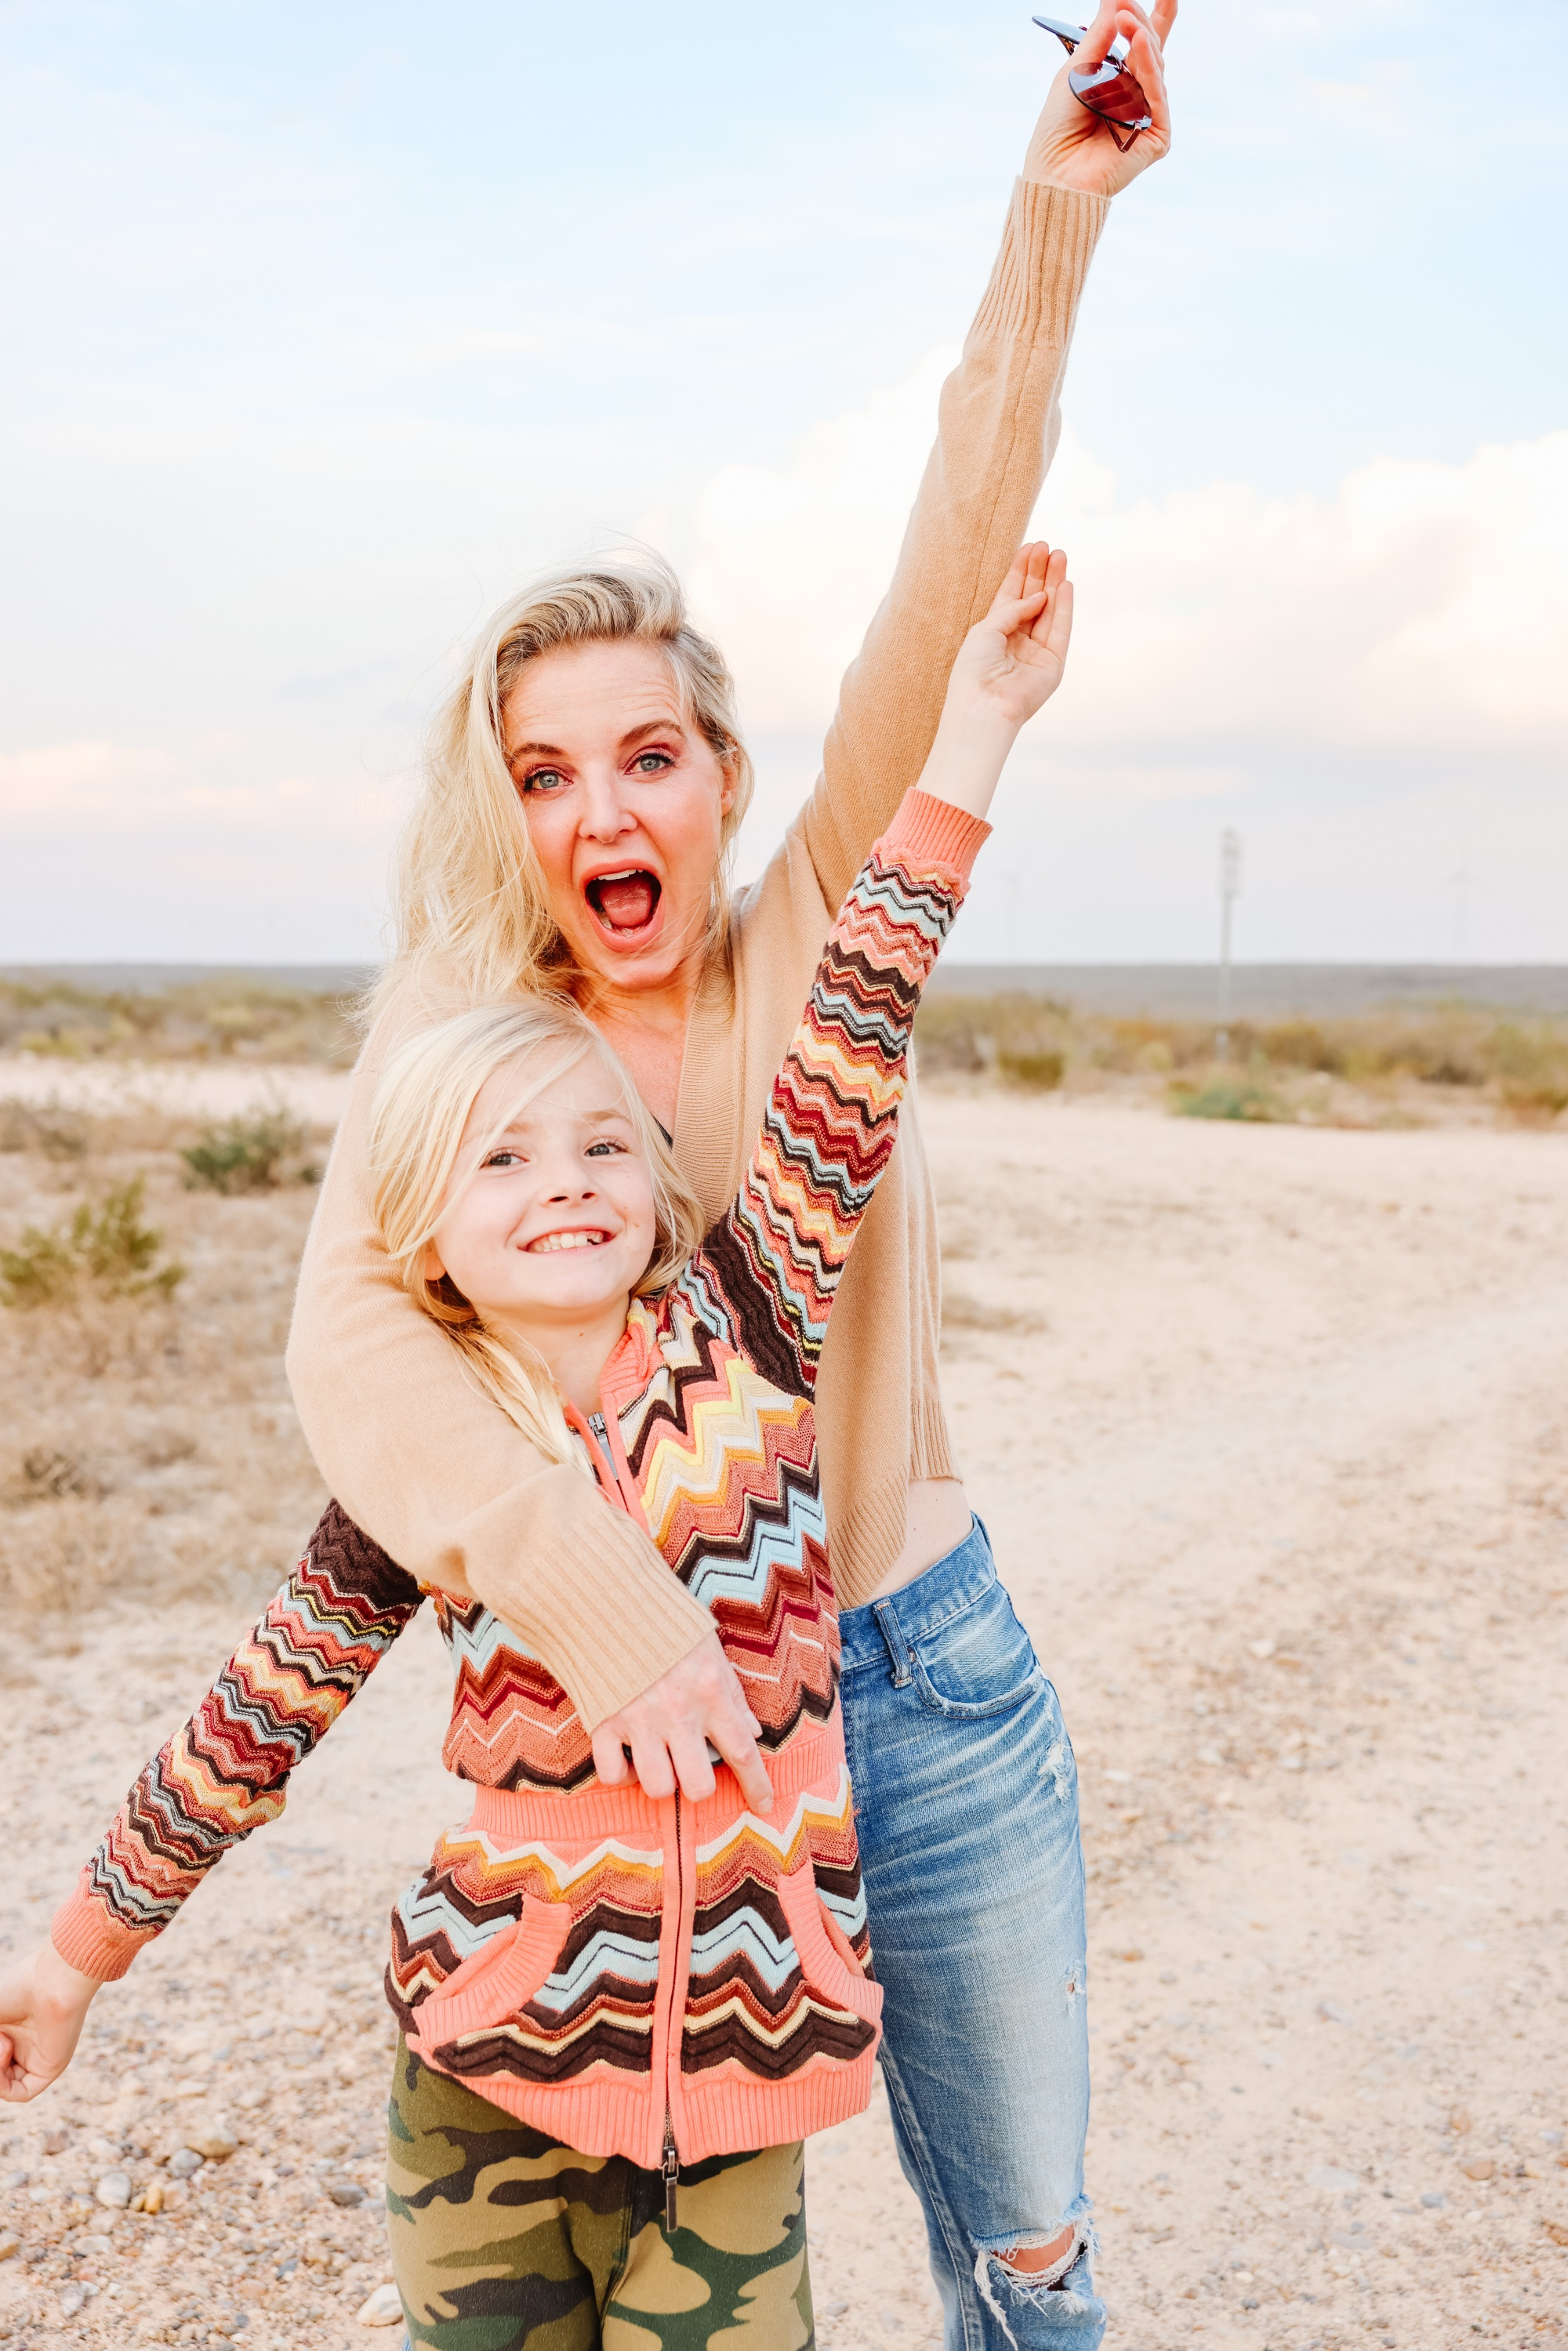 Mother's Day gift ideas 2021 featuring mother and daughter with blonde hair